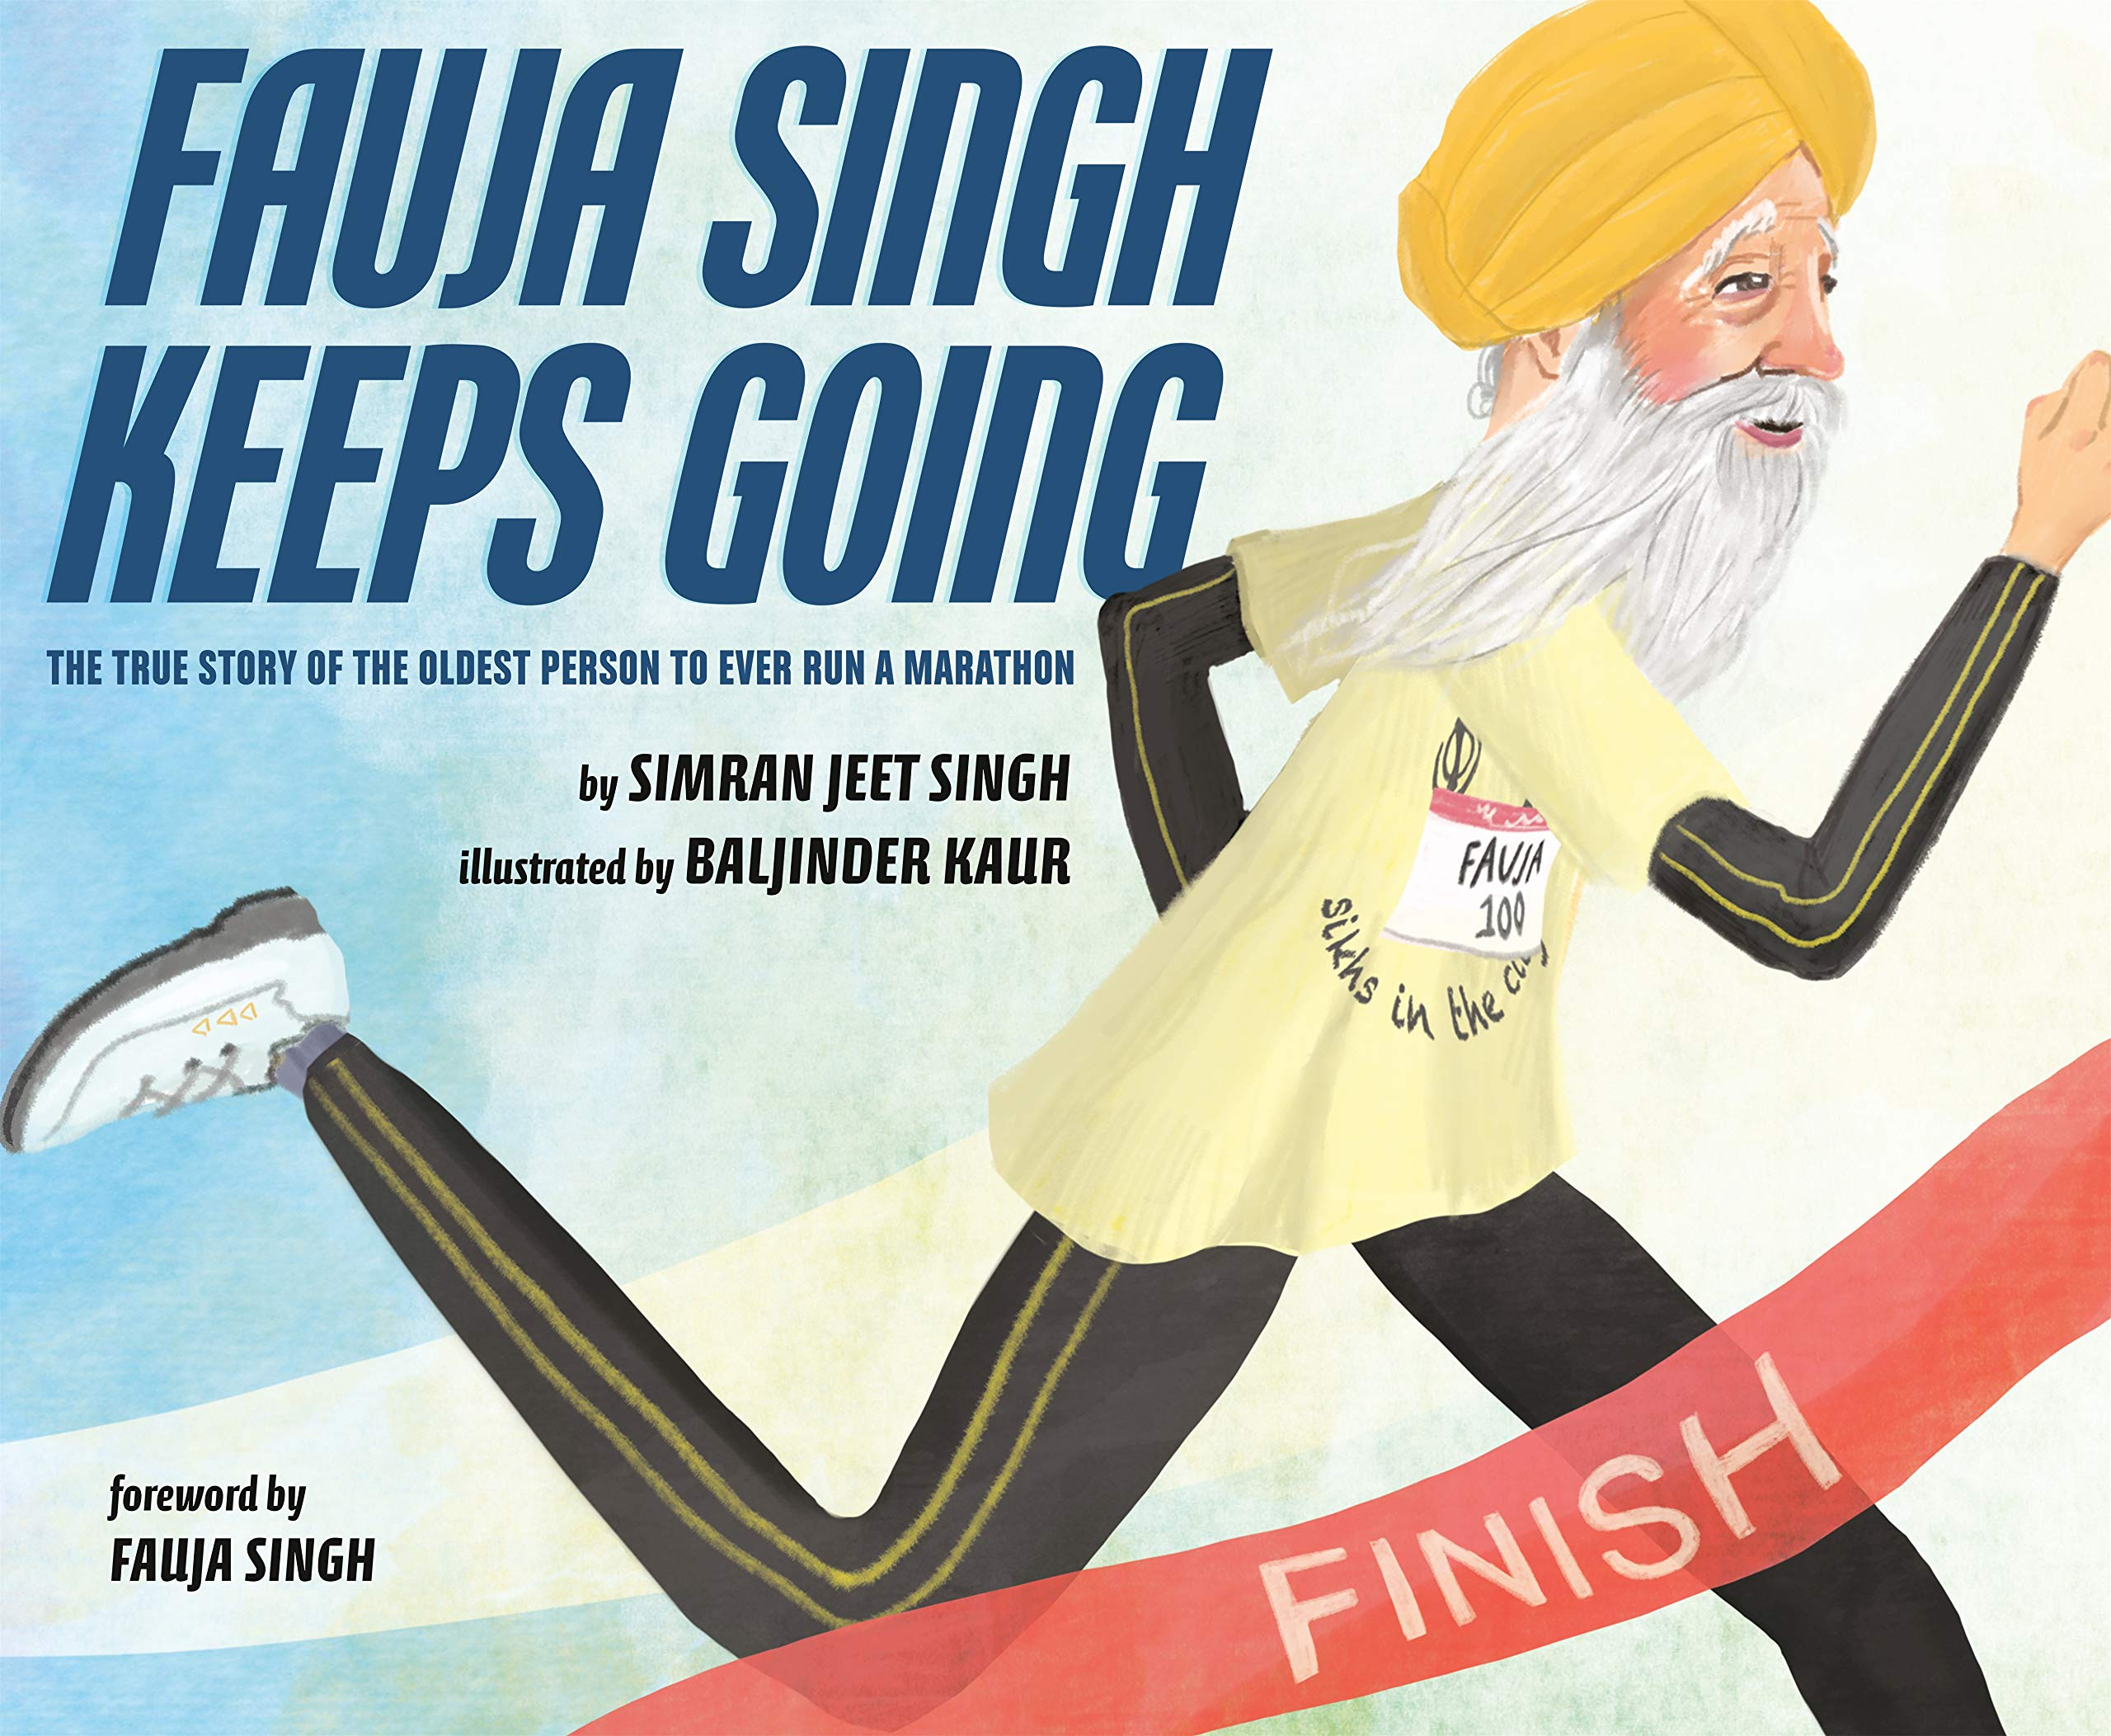 Amazon.com: Fauja Singh Keeps Going: The True Story of the Oldest ...